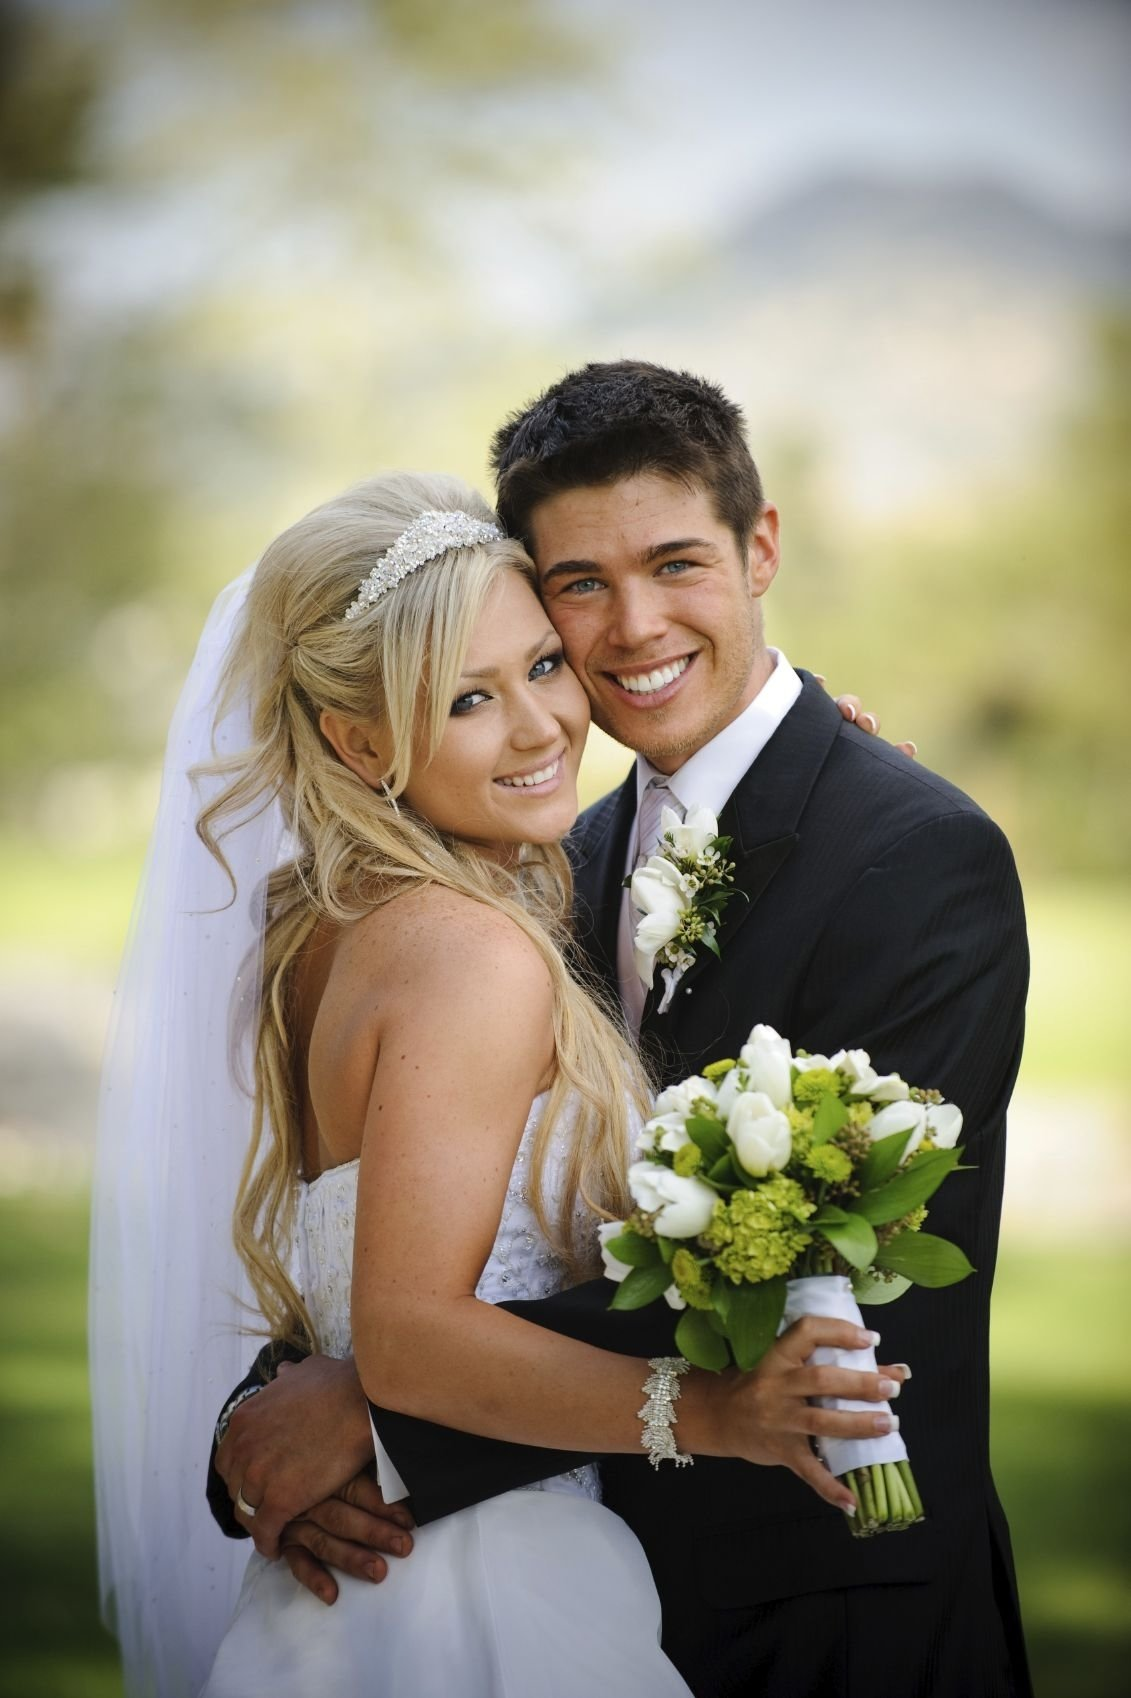 10 Fabulous Wedding Photo Ideas Bride And Groom creative wedding photo ideas bride and groom wedding package 2020